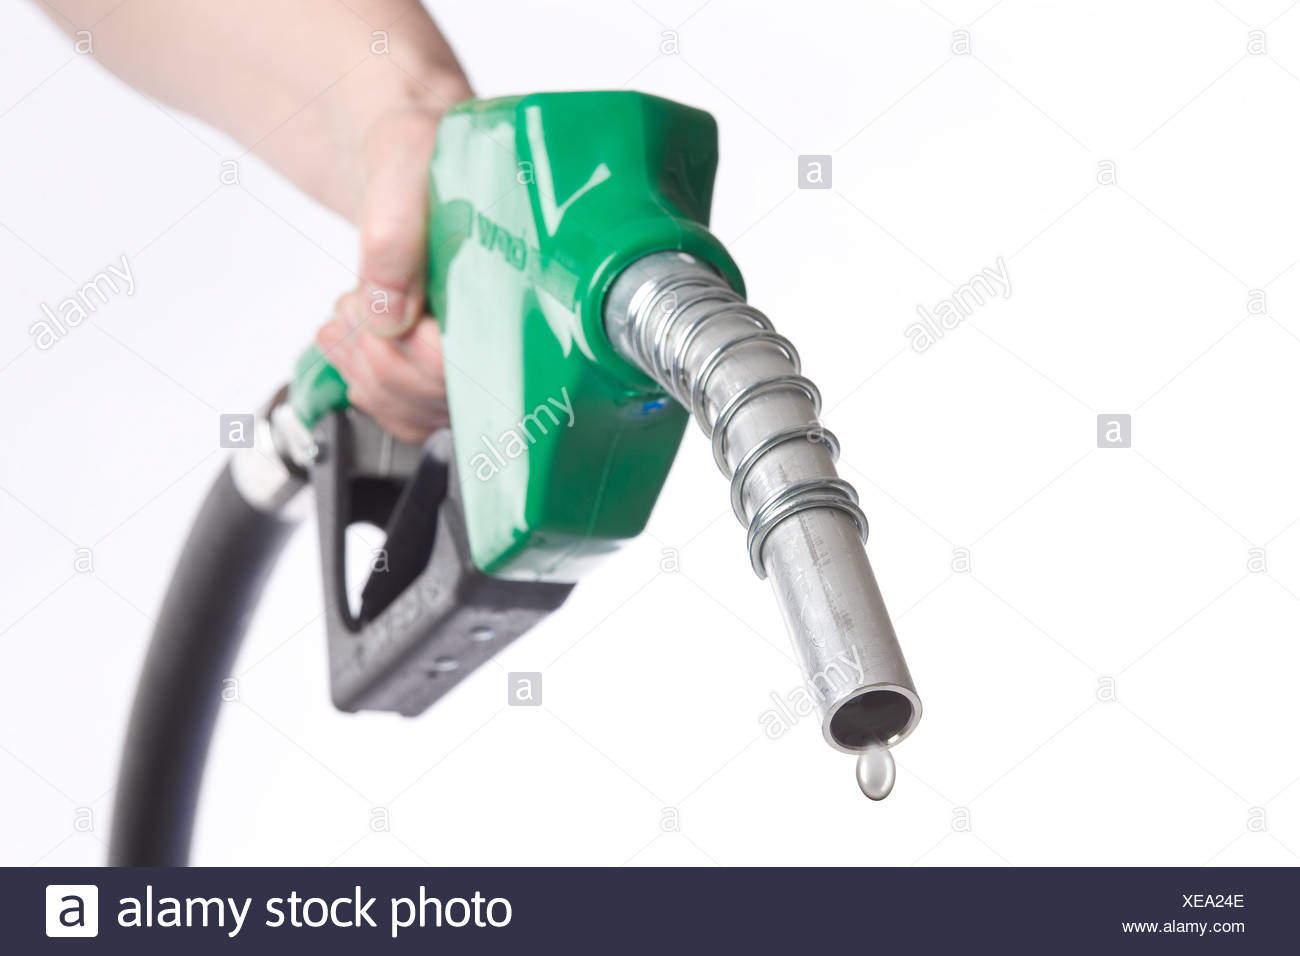 Hand holding nozzle with drop of water coming out, Winnipeg, Manitoba - Stock Image